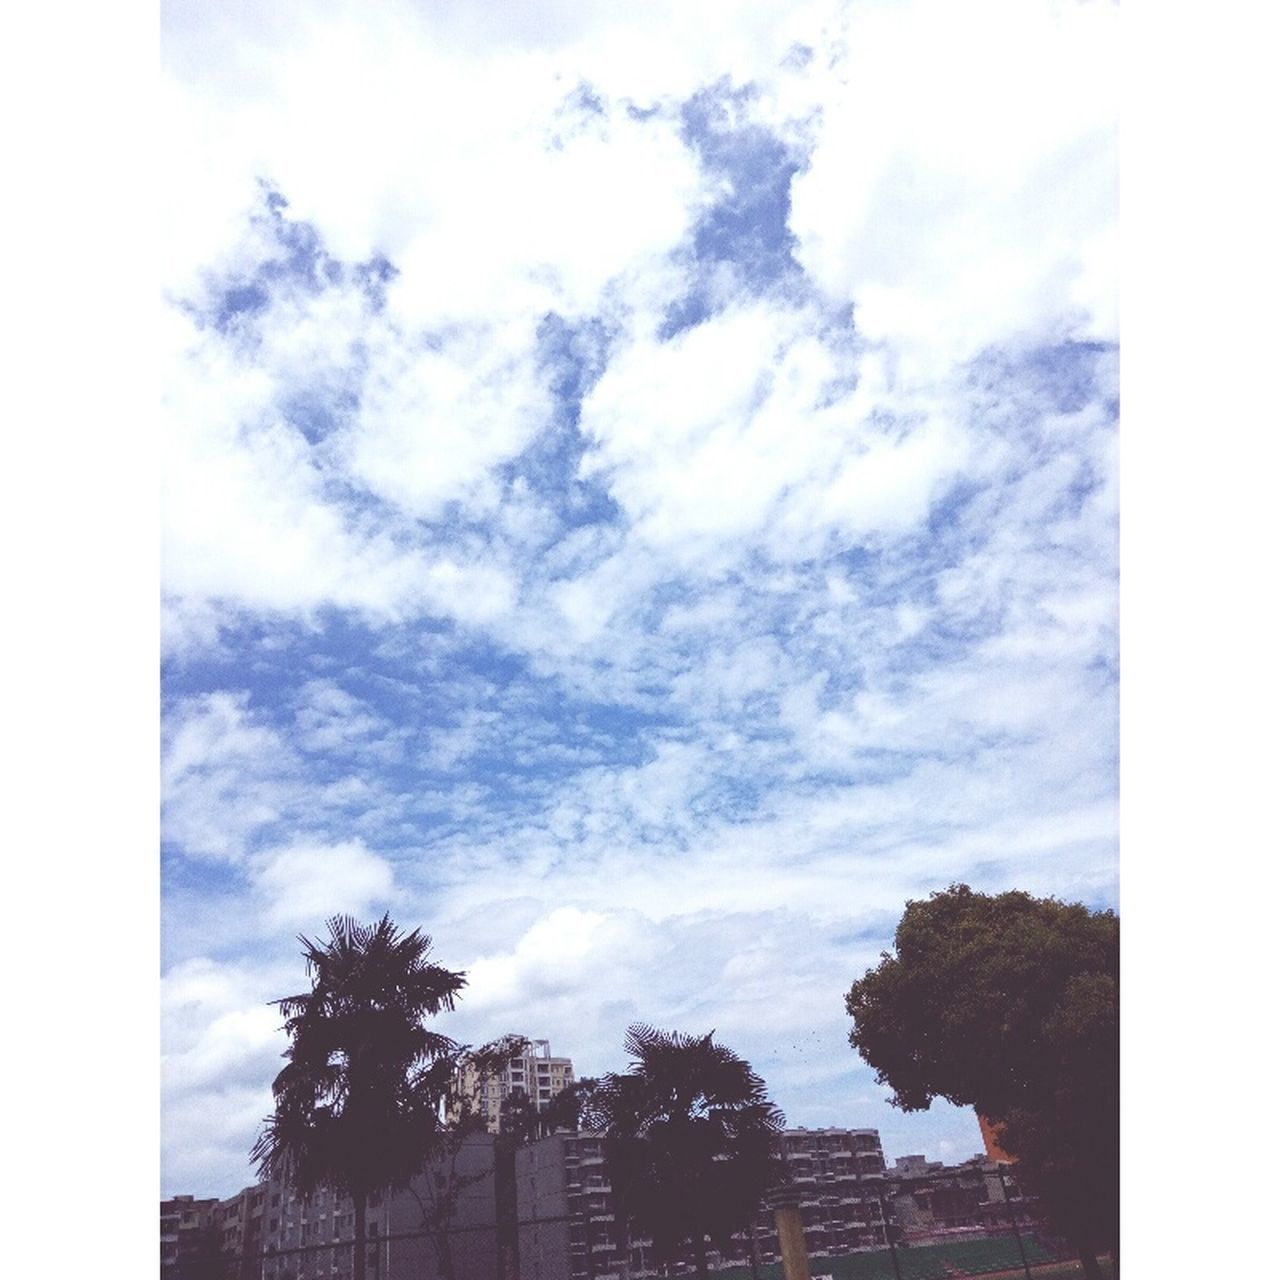 sky, tree, cloud - sky, low angle view, no people, outdoors, palm tree, day, building exterior, architecture, growth, beauty in nature, nature